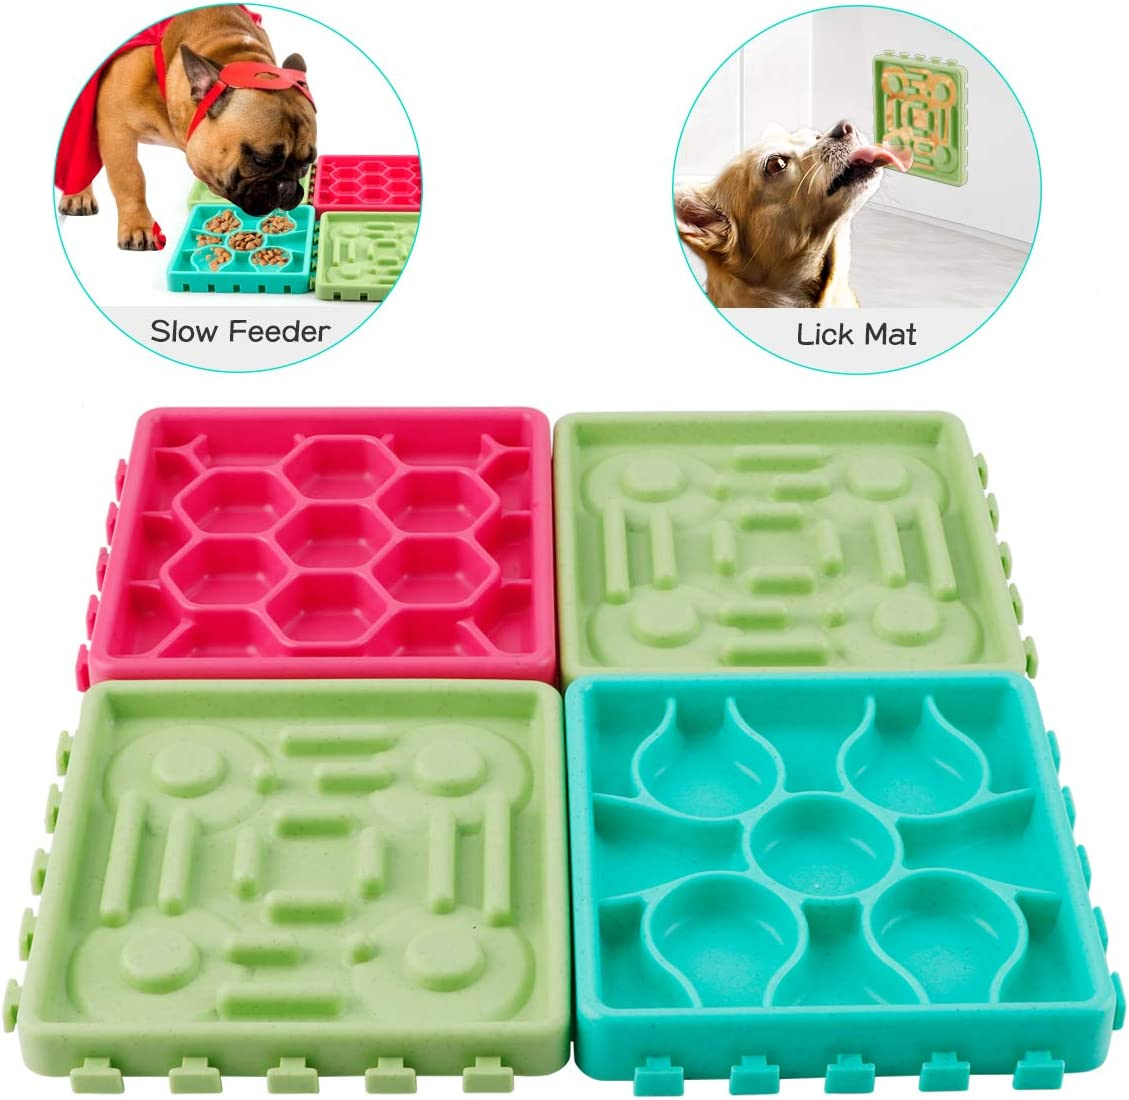 FPVERA 4 PCS Slow Feeder Dog Bowls Non Slip Puzzle Bowl Treat Dispensing Mat Suctions to Wall for Pet Bathing Grooming and Training